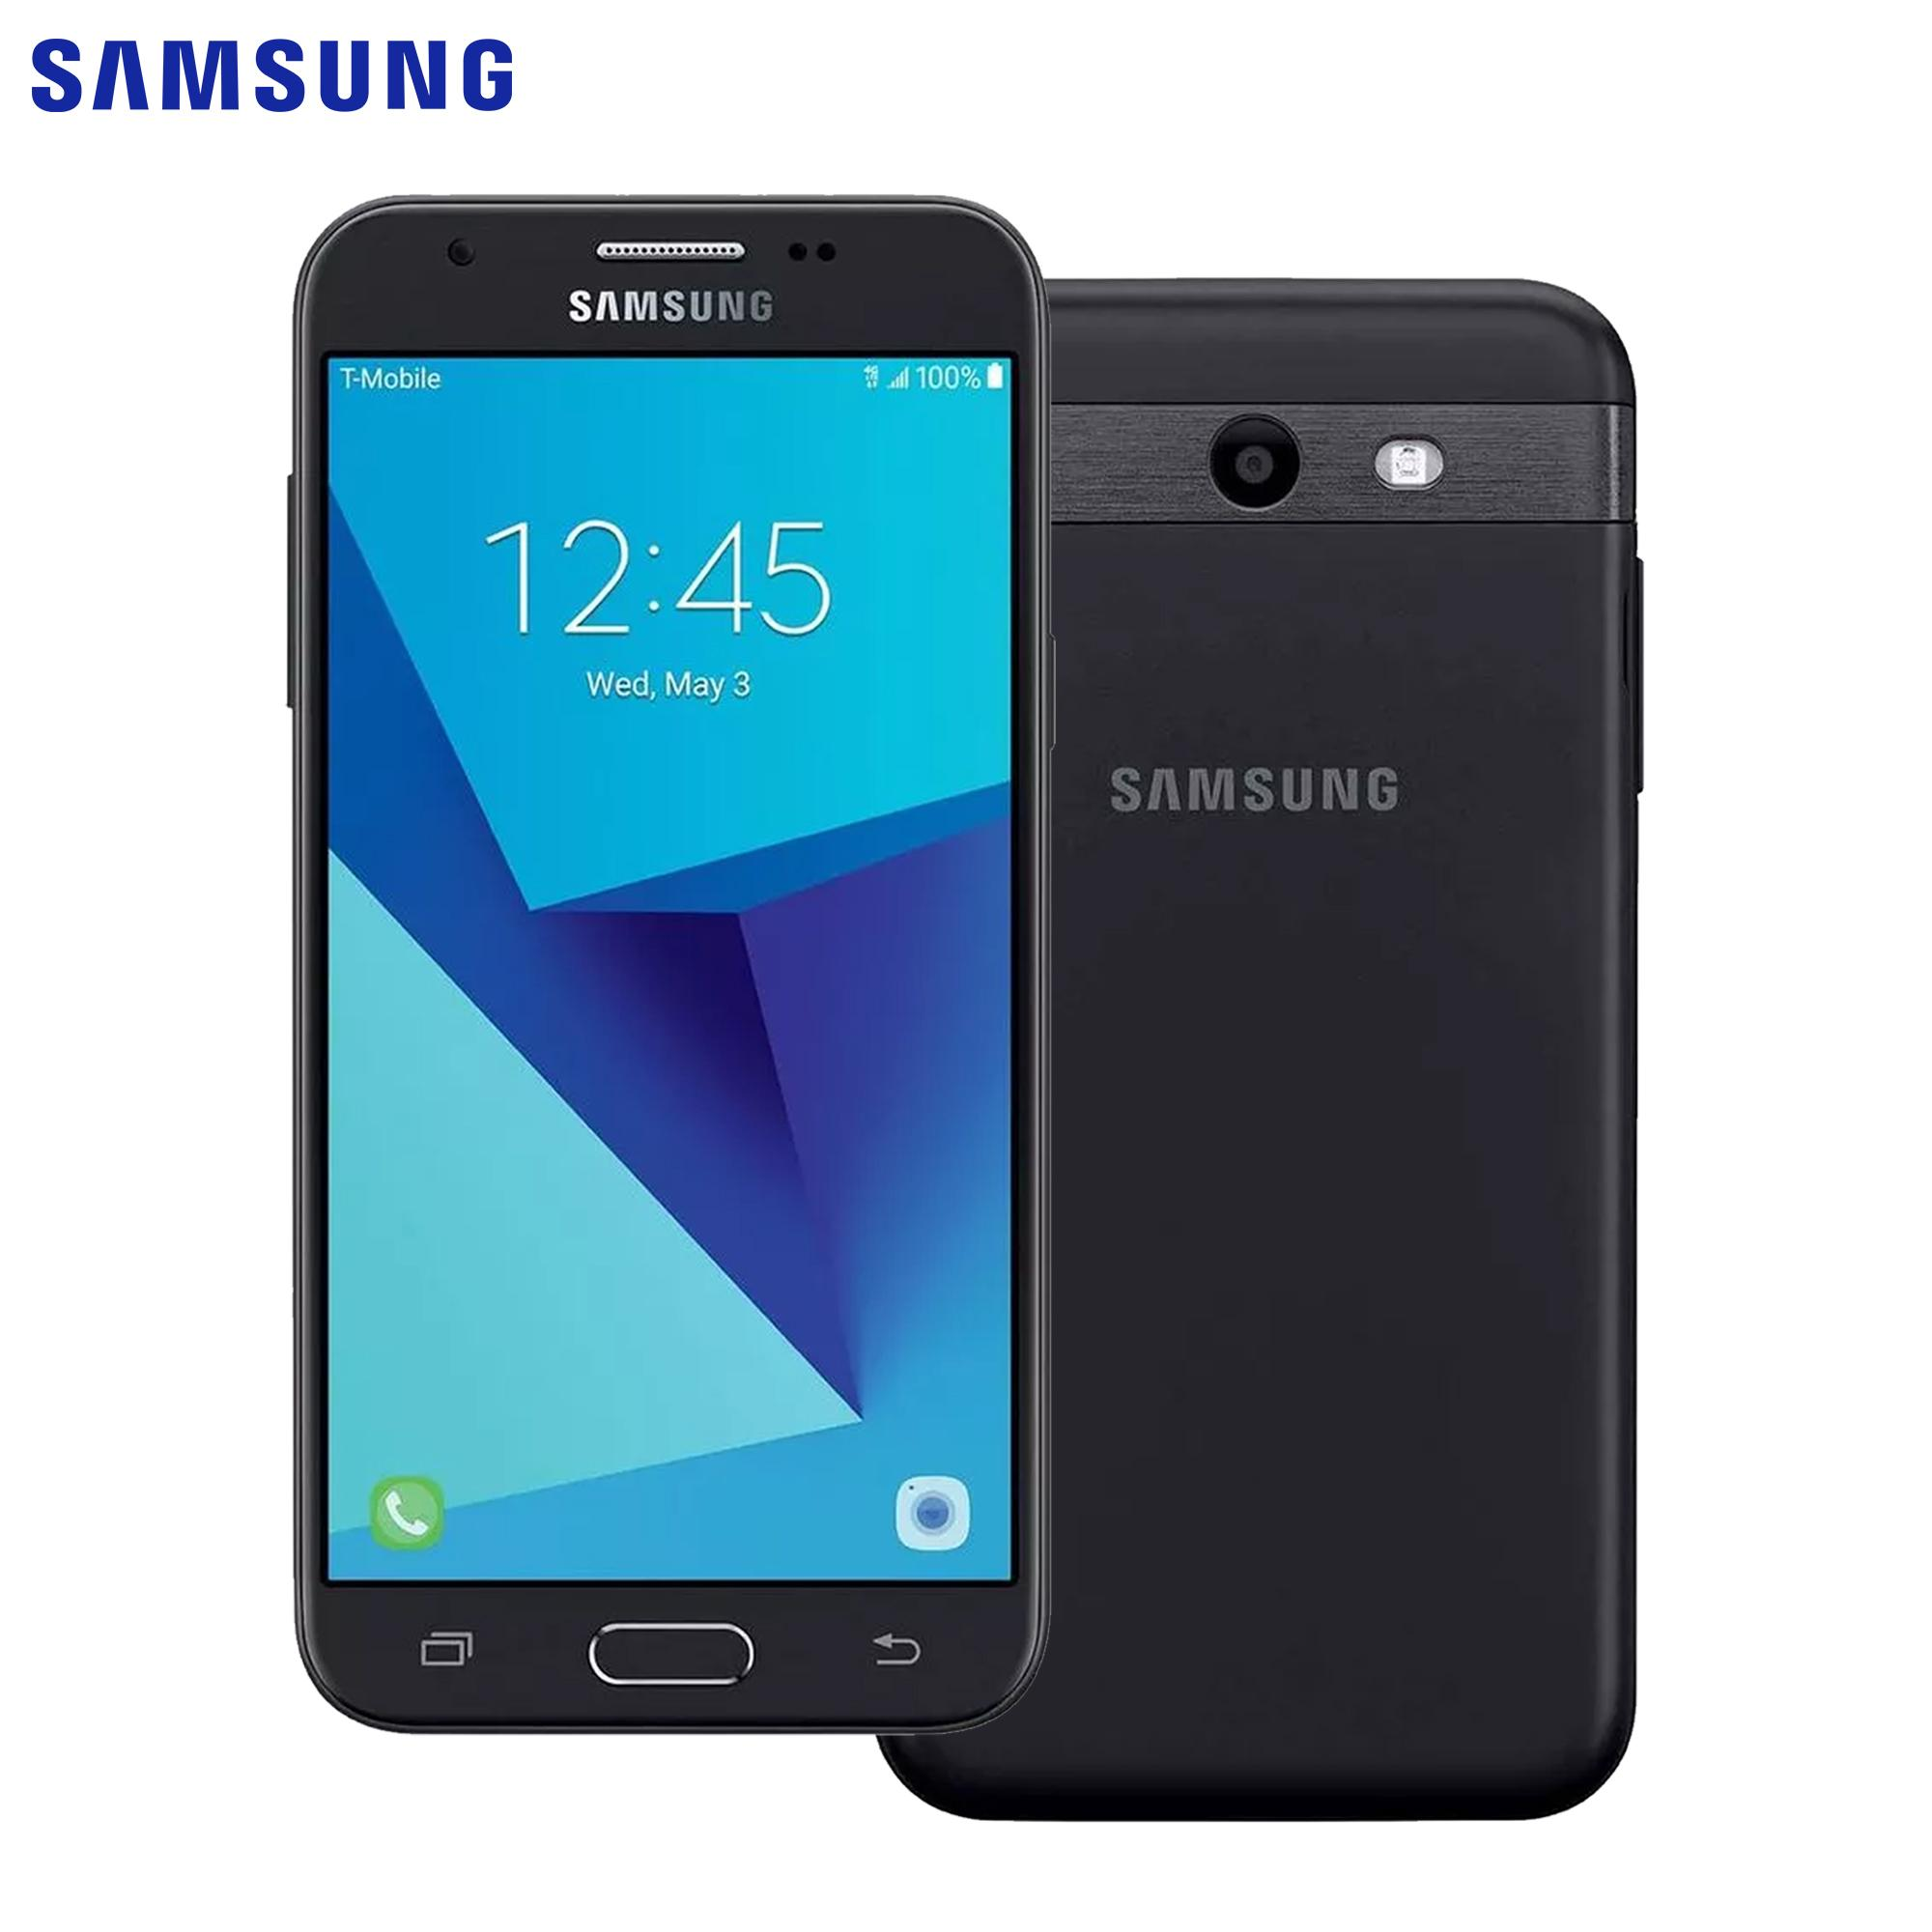 Samsung philippines samsung phone for sale prices reviews lazada samsung galaxy j3 prime 16gb rom ccuart Image collections